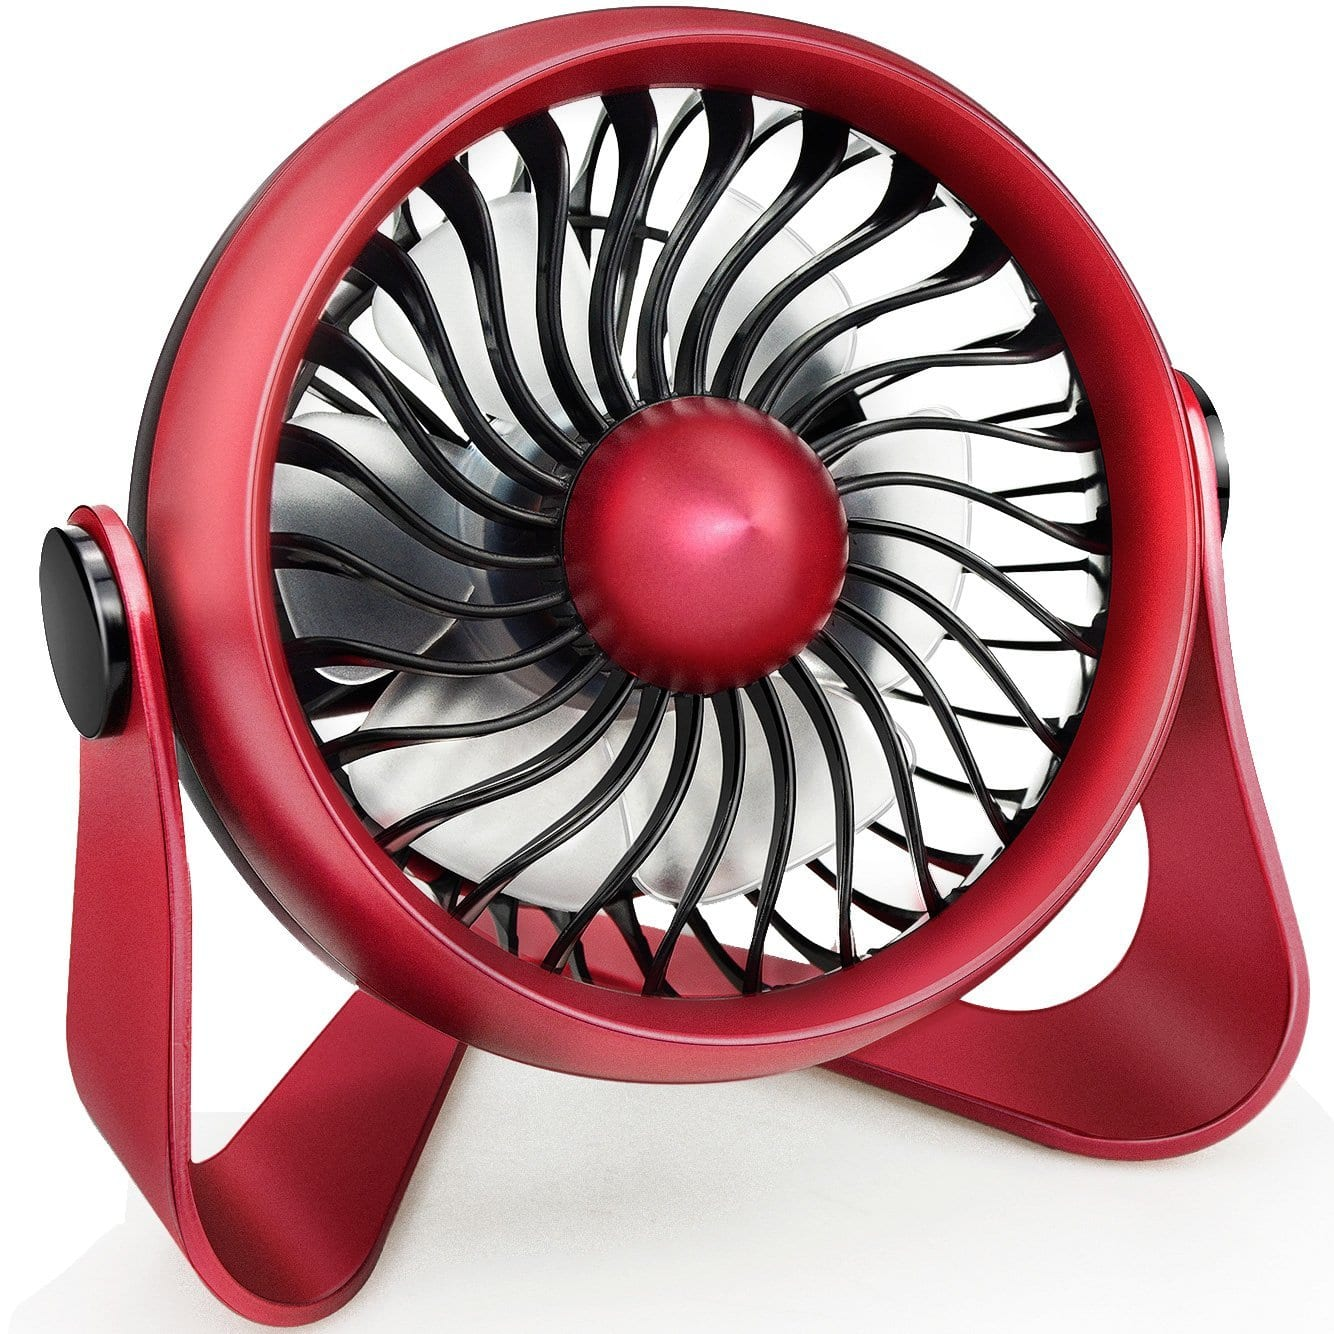 WIOR Aromatherapy Essential Oil Fan to Blow Fragrant Wind, Portable Mini Personal Fan with 4 Speeds Powered by USB or Rechargeable Battery for Office, Table, Travel (Red) -- $7.99